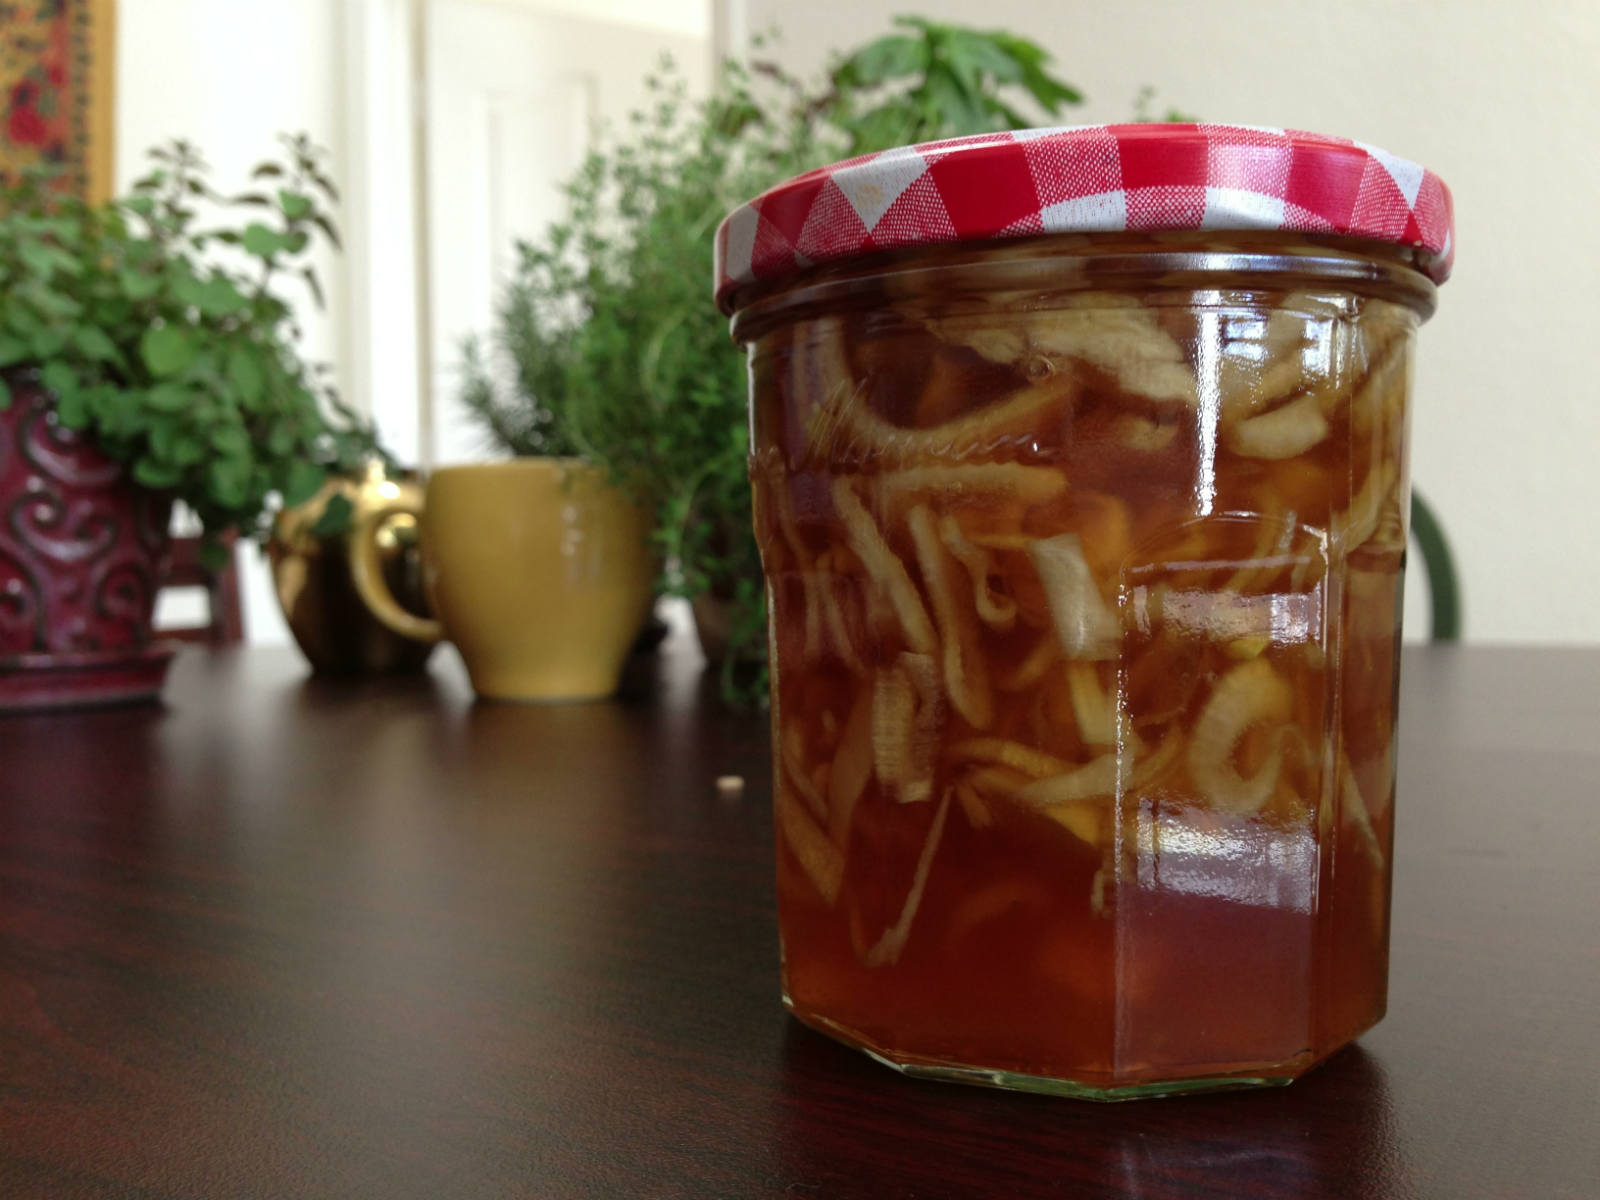 Grandmas homemade remedy for asthma bronchitis remedy for asthma honey and red onion ccuart Gallery